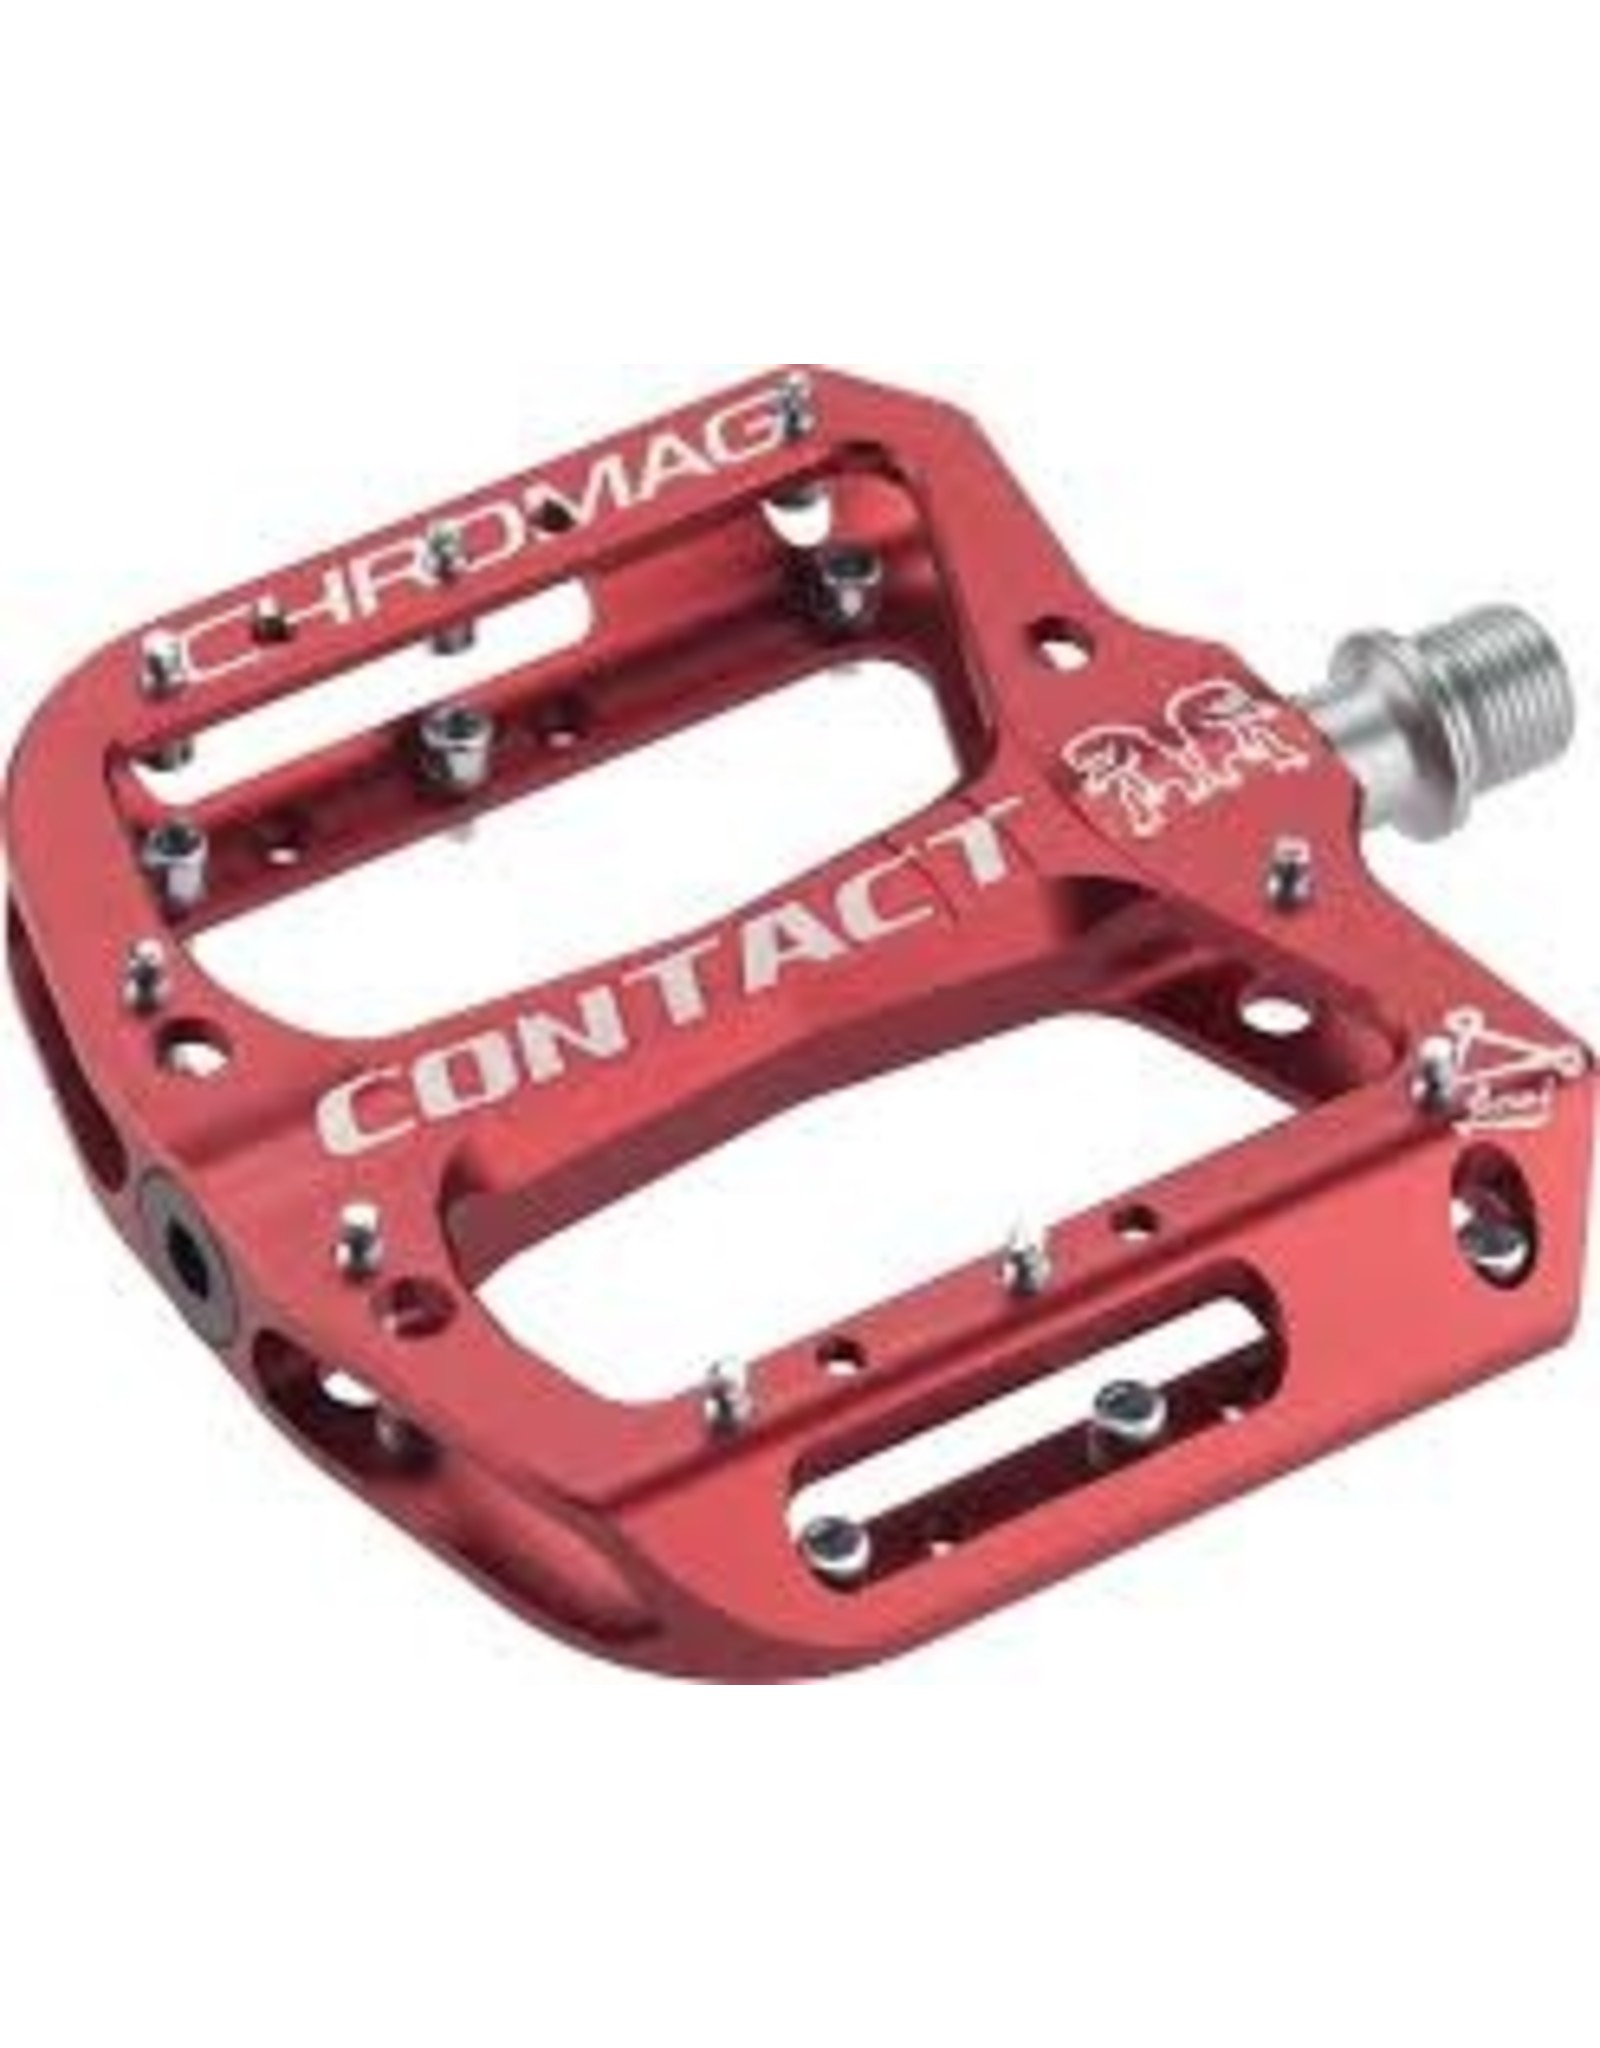 Chromag Contact Pedals Red